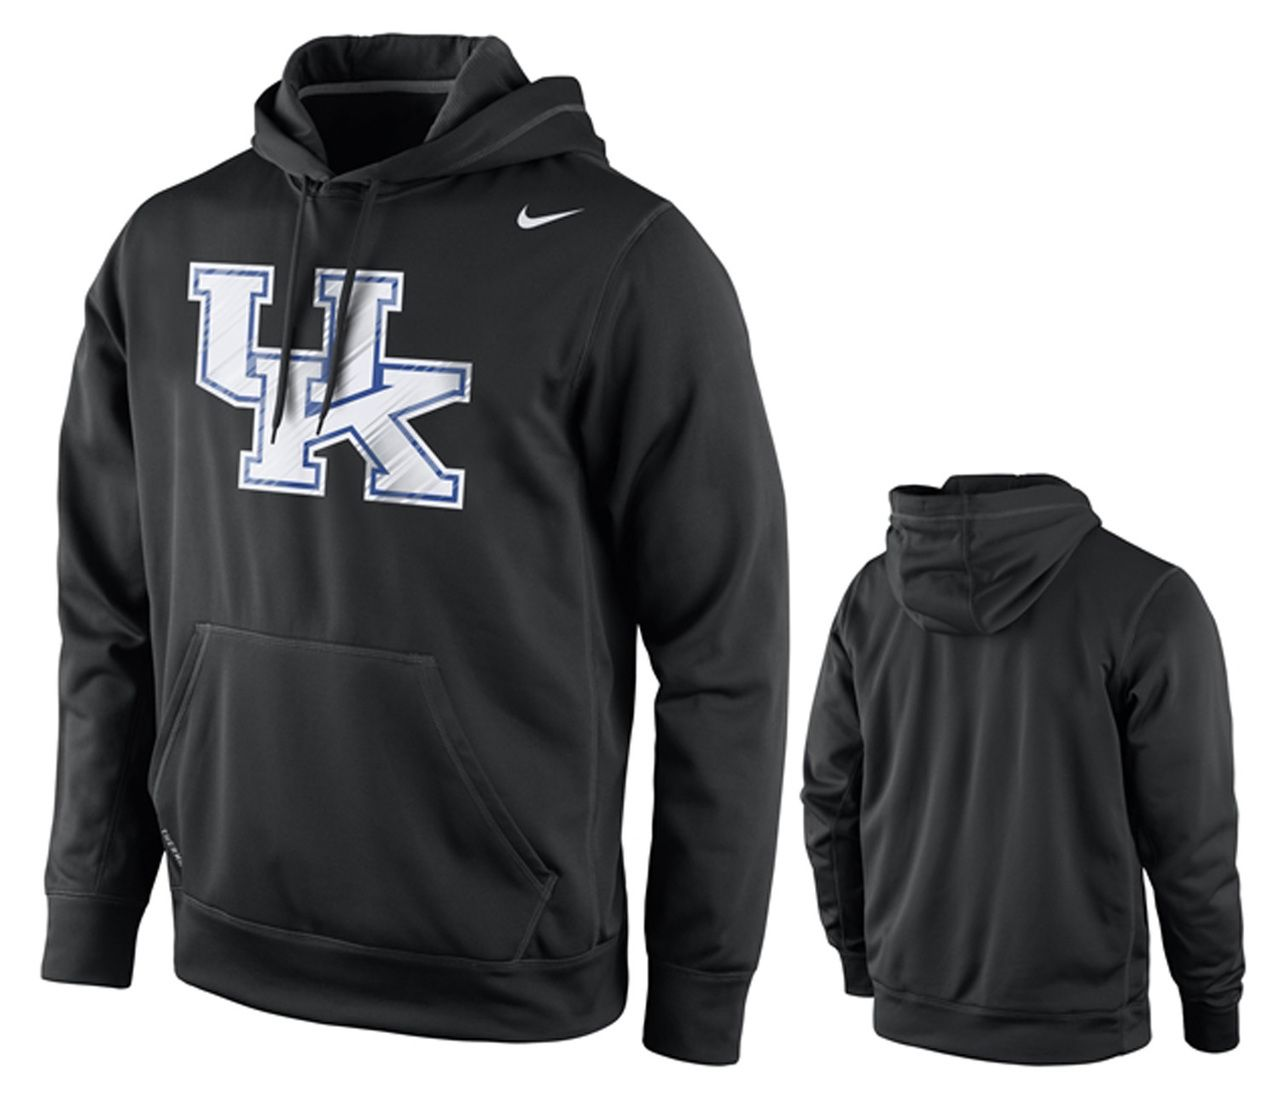 Kentucky Wildcats Adult Warpspeed Performance Hooded Sweatshirt - Black - Campus Colors #kentuckywildcats